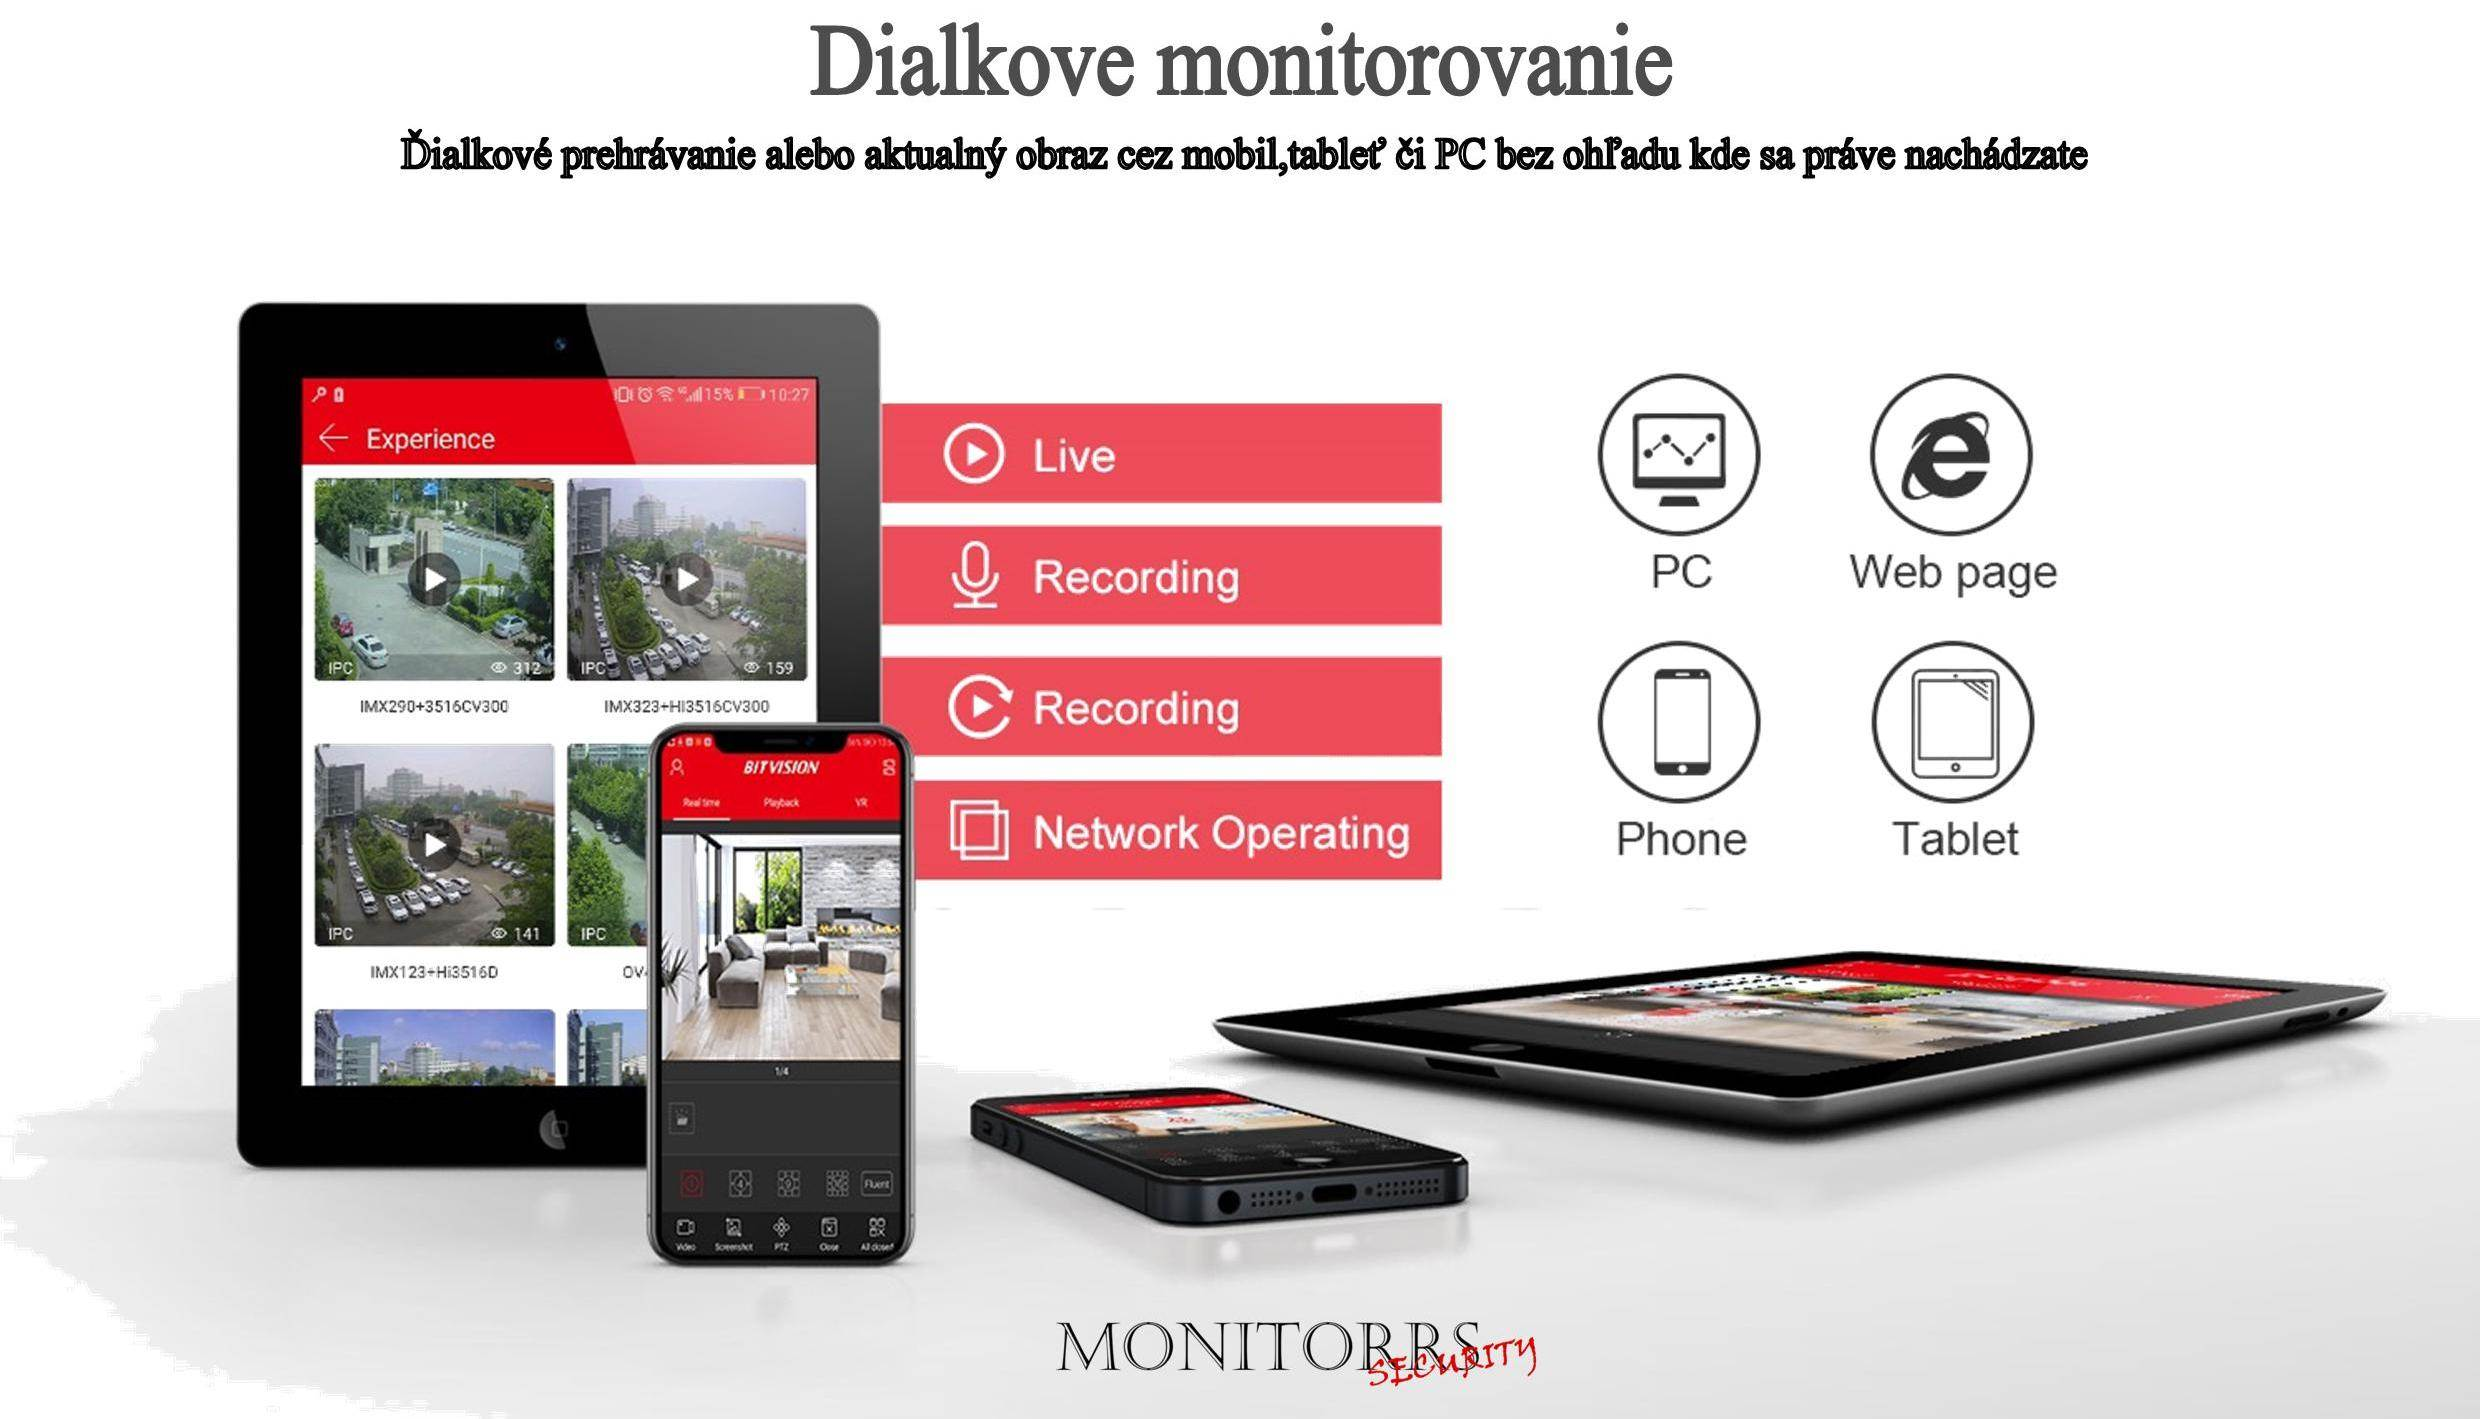 Monitorrs Security AHD Dome kamerový set 8 kanálový 2,1 M.Pix. Starvis (6256K8)